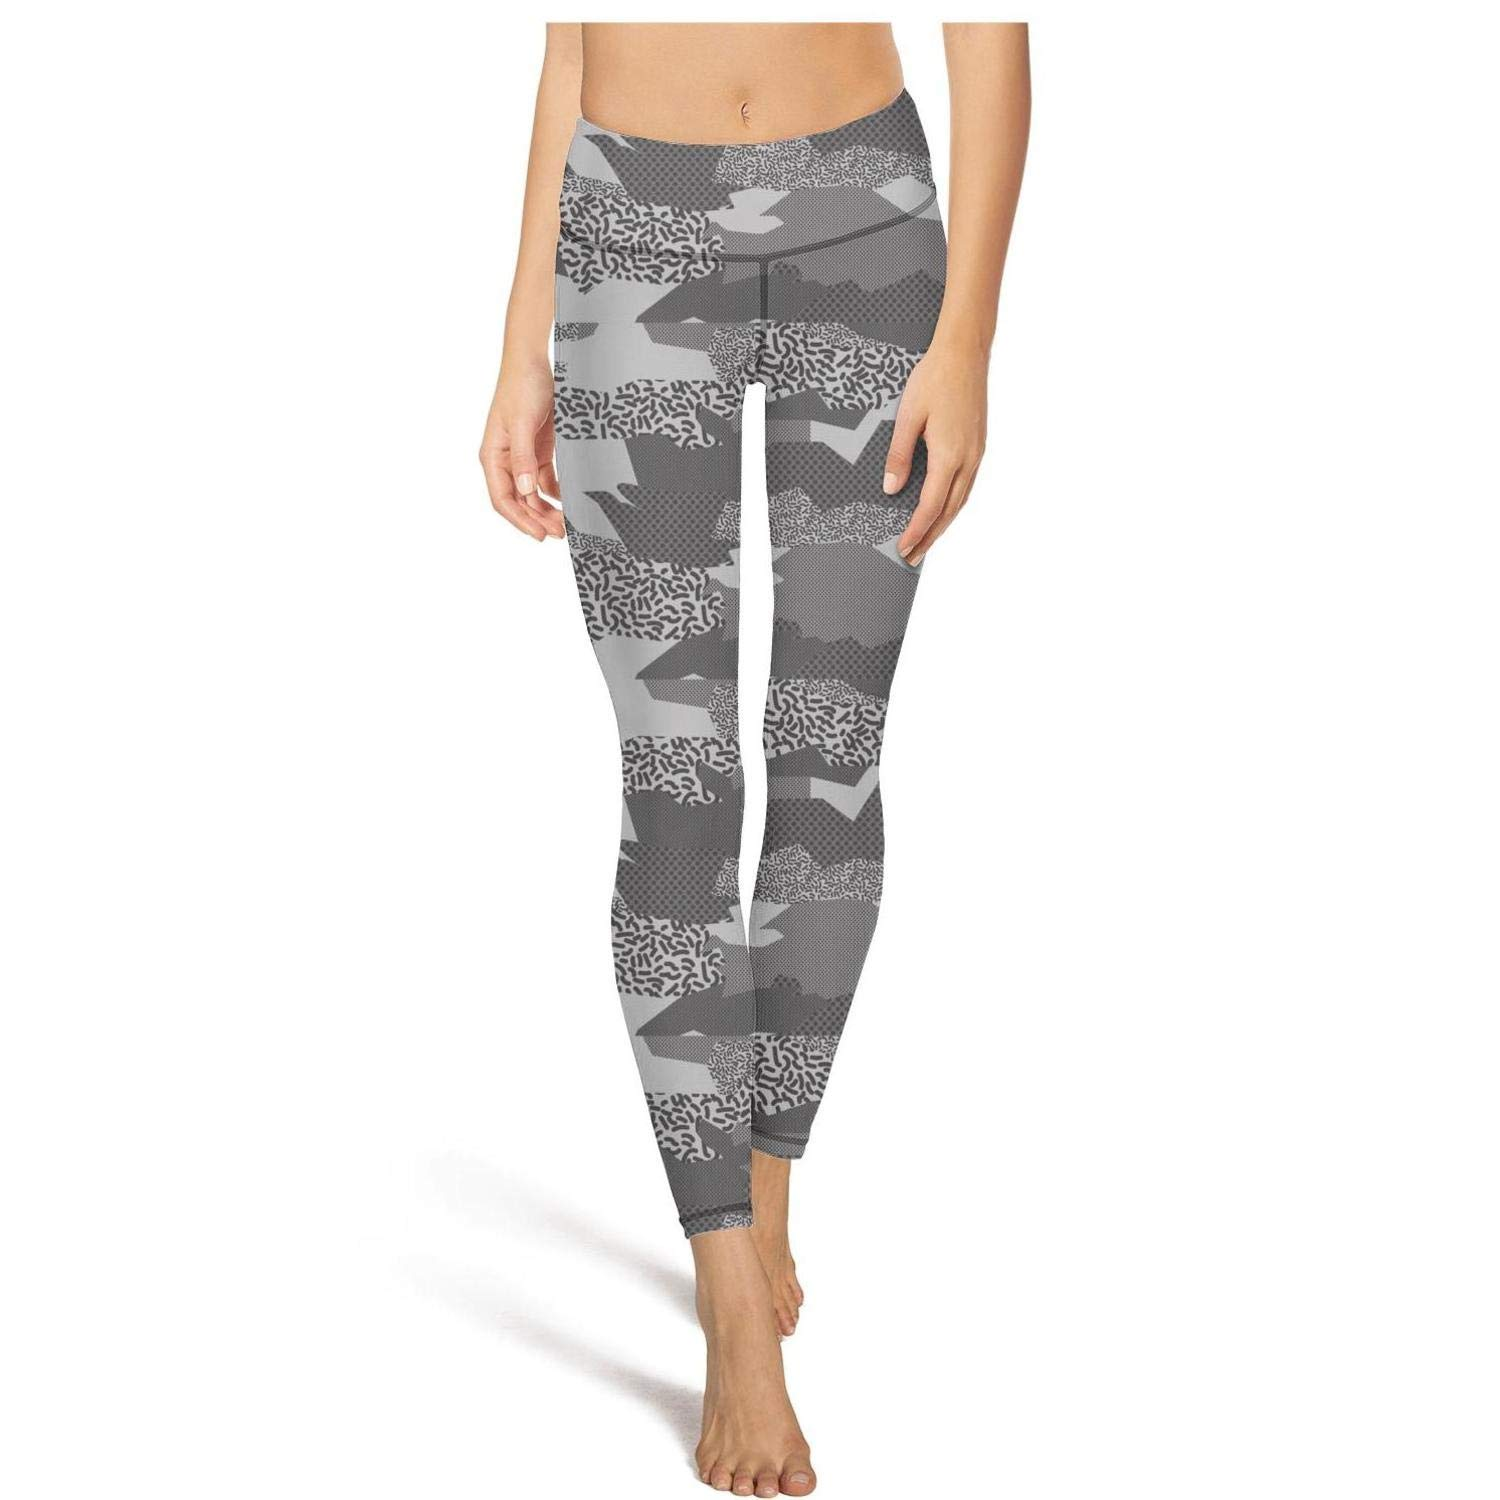 ba070ee49a390 Yogalicious Yoga Pants for Womens Capri Leggings Camouflage Collage Art  Army Sport Workout Running Legging Tights at Amazon Women's Clothing store: